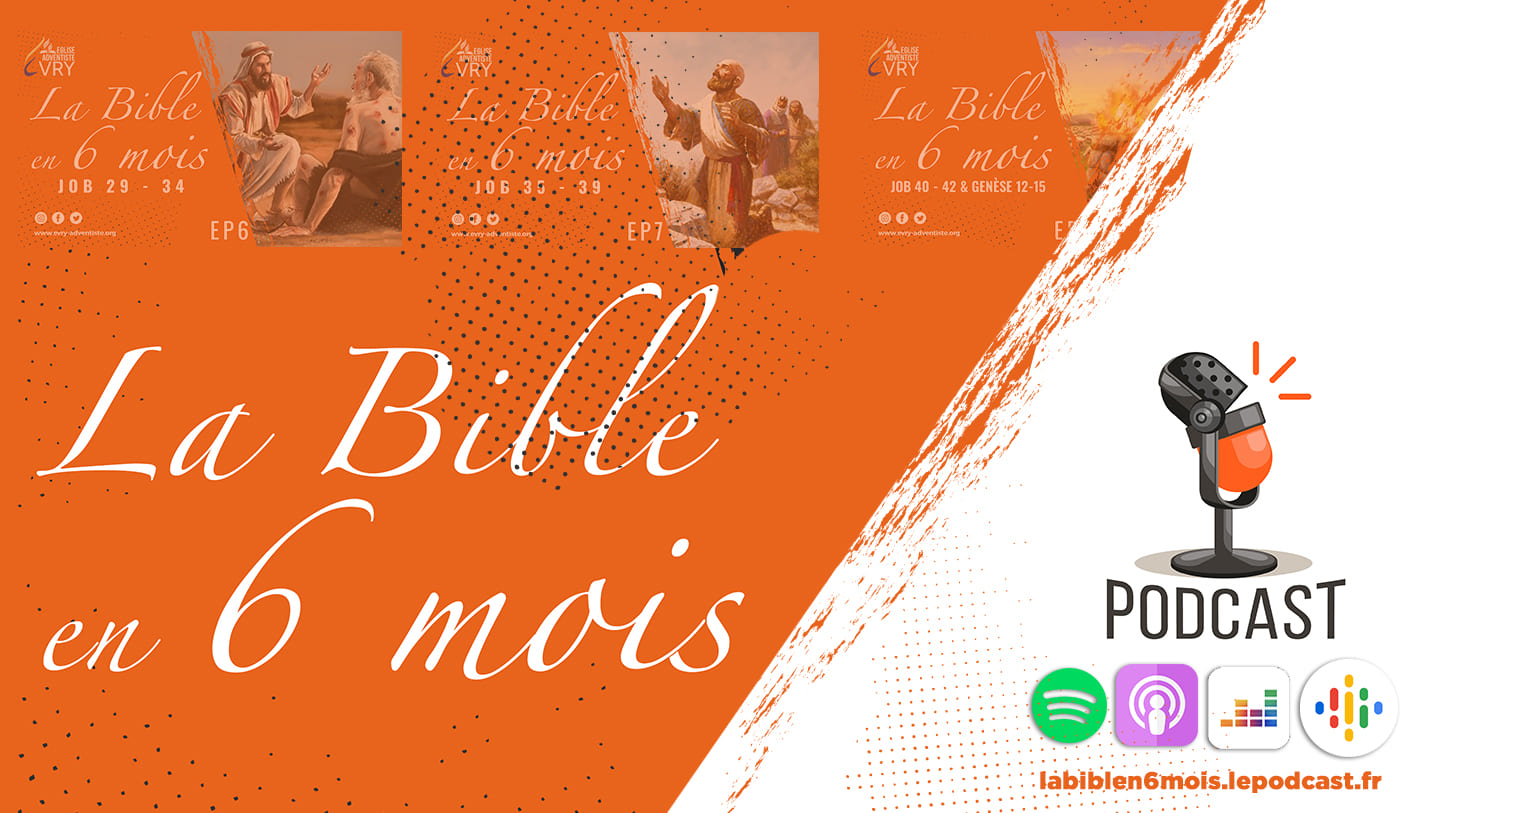 La Bible en 6 mois PODCAST